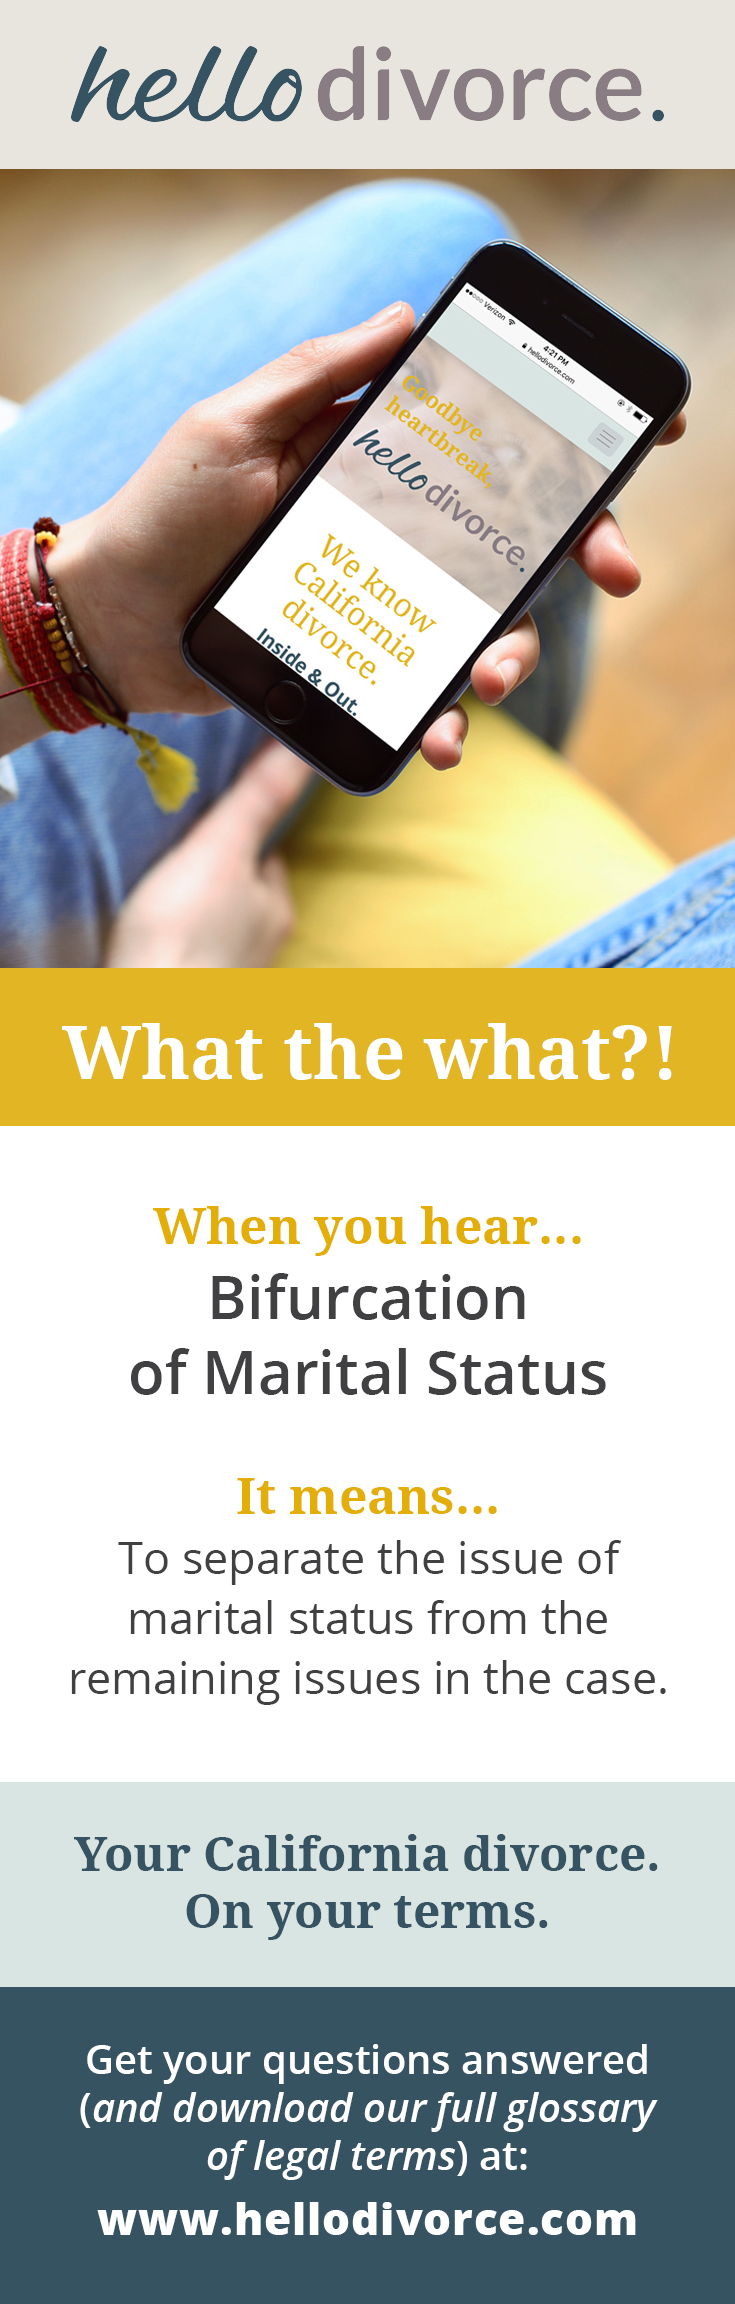 What Does Bifurcation Of Marital Status Mean Legalese Can Be So Hard To Understand That S Why We Created A Glossary T Divorce And Kids Divorce Document Sign